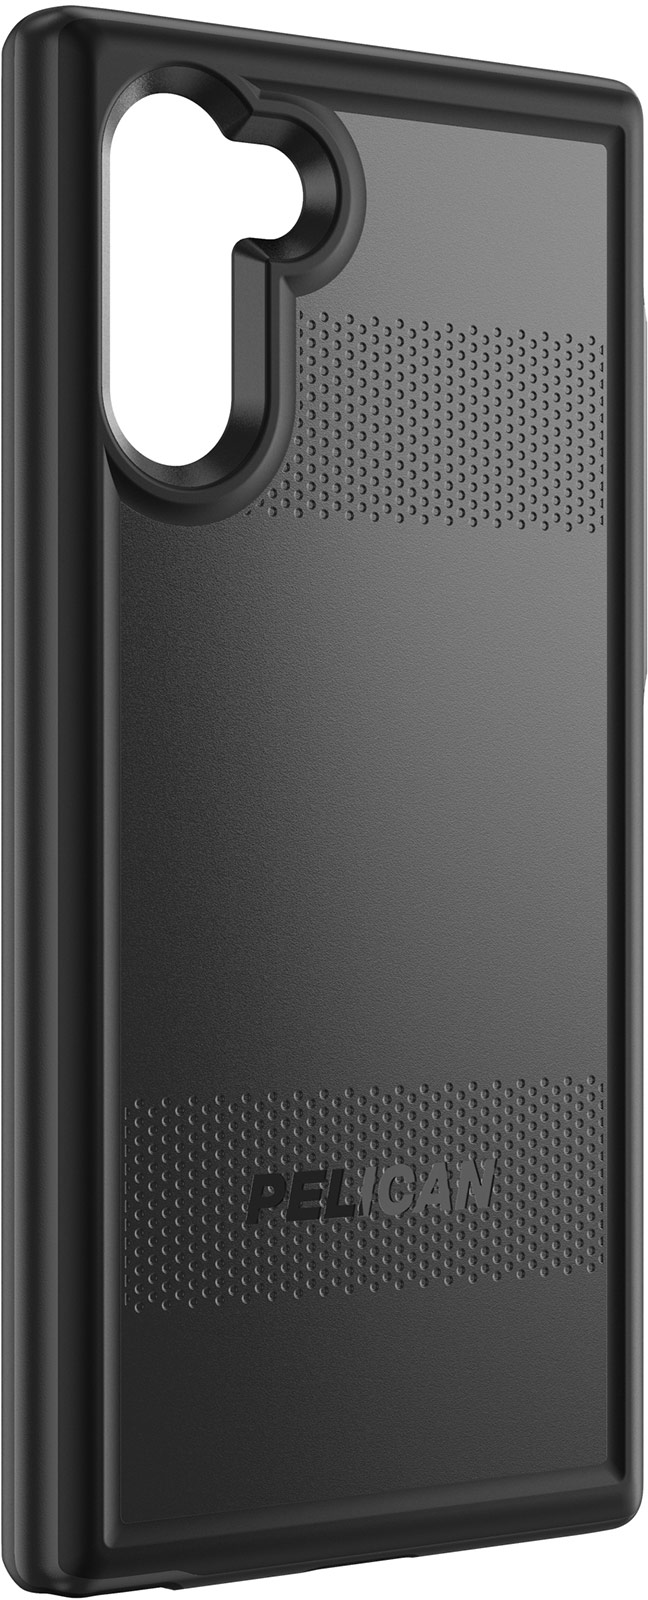 pelican galaxy note 10 protector phone case